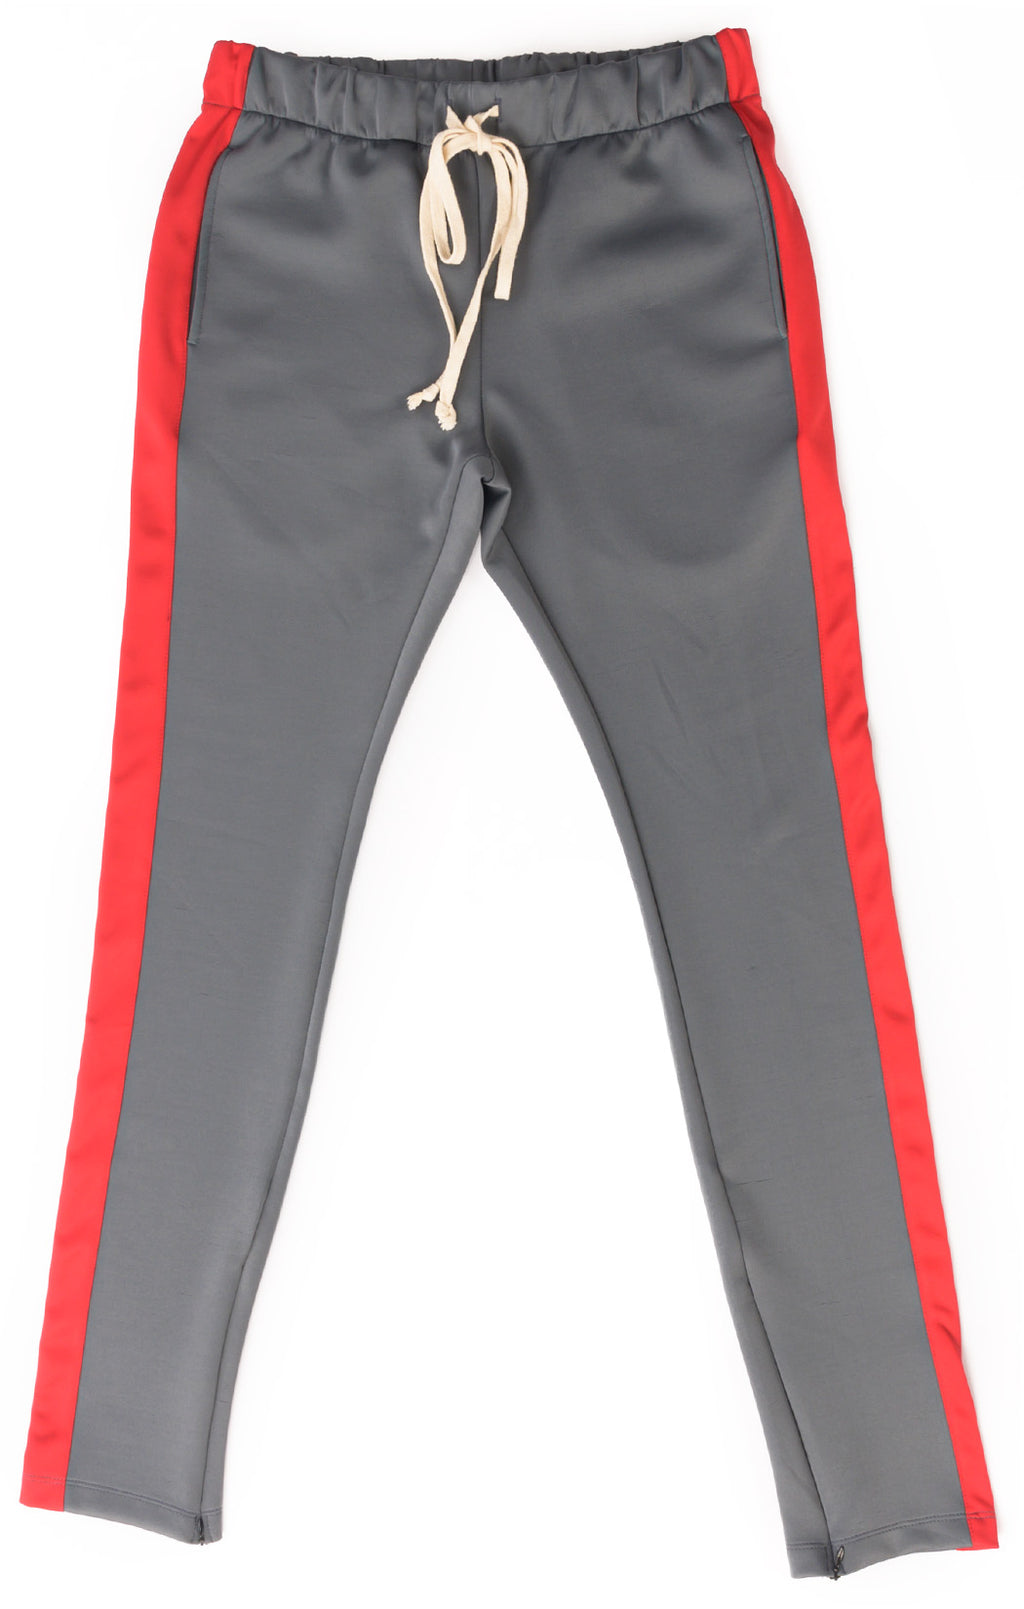 Front view of EPTM with tags Sweatpants Size: Medium